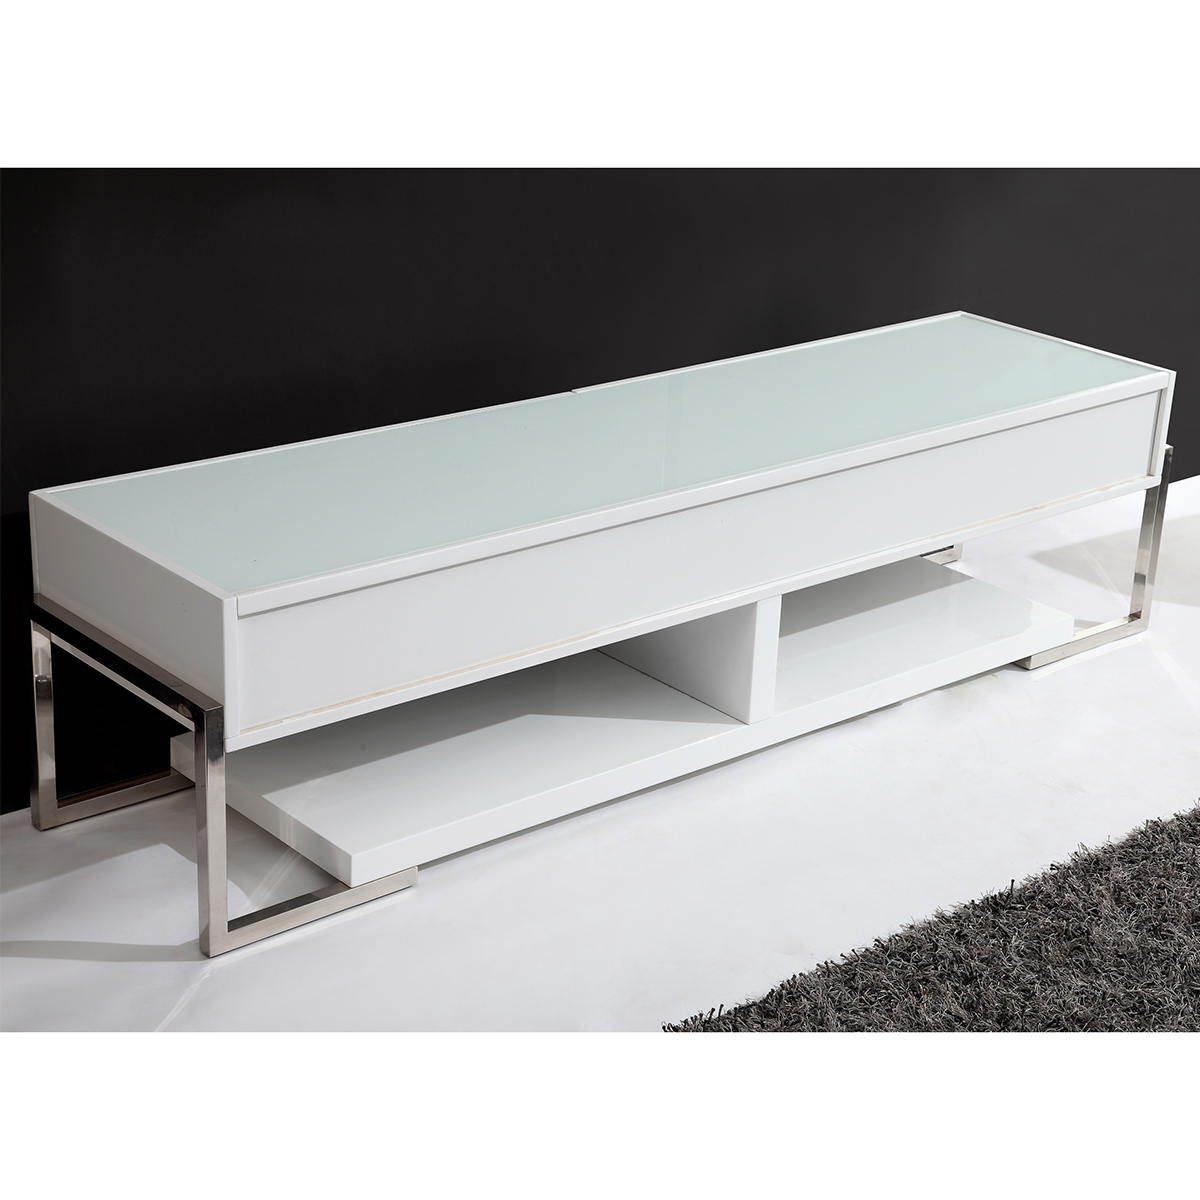 "B Modern Bm 650 Awht Agent 71"" Contemporary Tv Stand In White Regarding Preferred White Glass Tv Stands (View 2 of 20)"